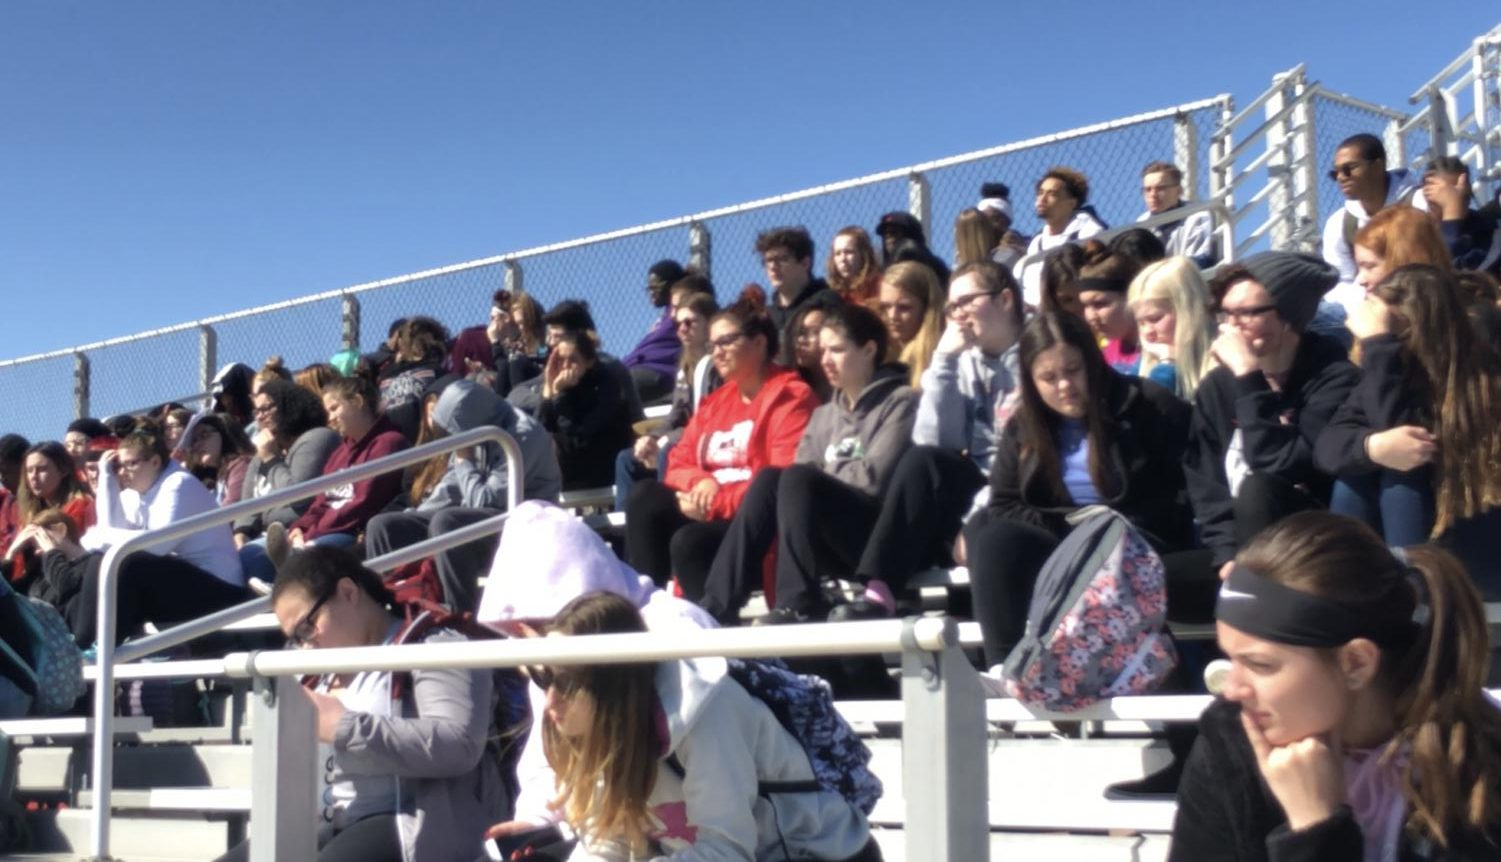 Students gather on the bleachers for the walkout.